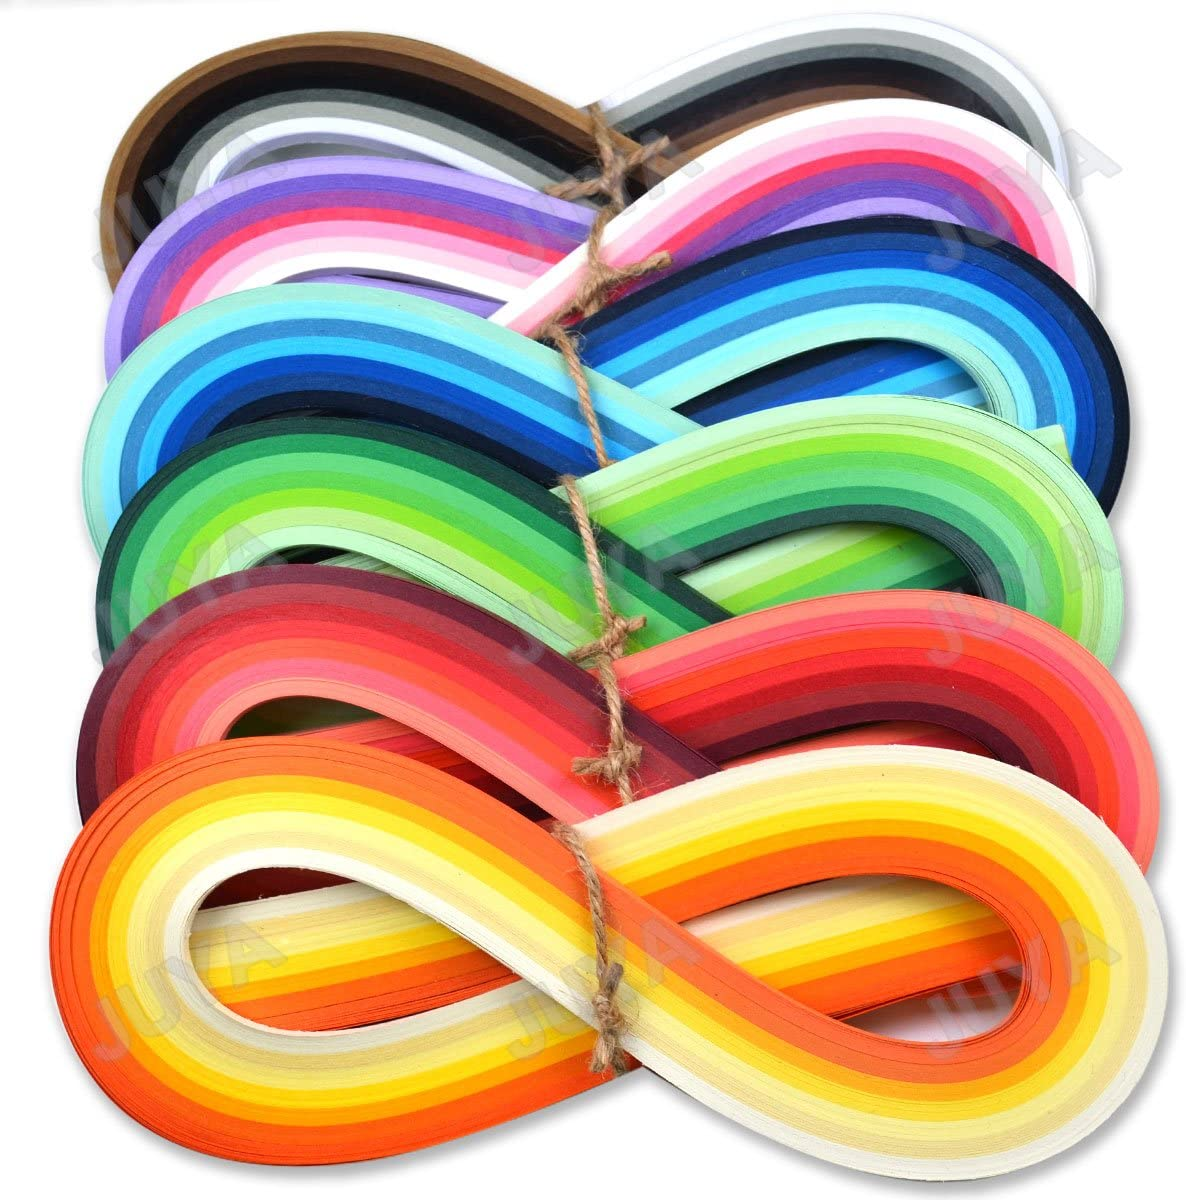 7 Yellow Colors,Width 10mm Juya Paper Quilling Set 54cm Length Up to 42 Shade Colors 6 pack